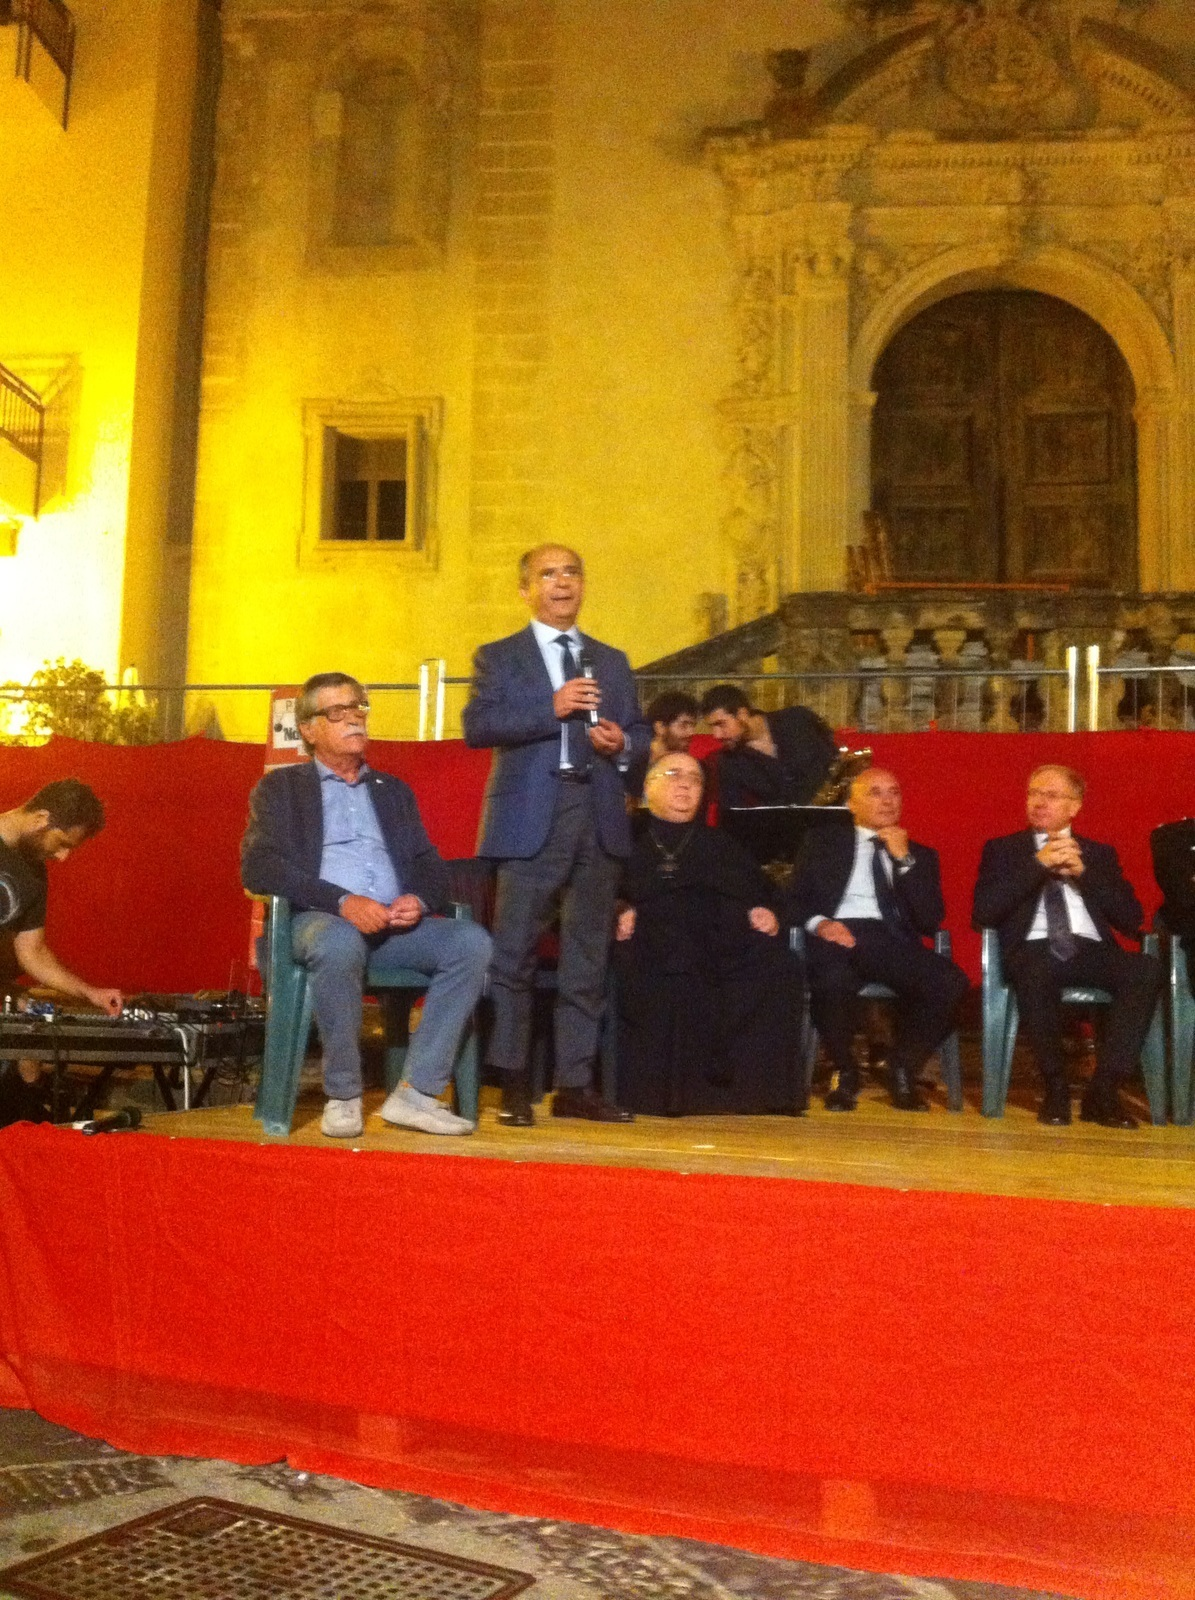 Intervento introduttivo di Salvatore Magarò